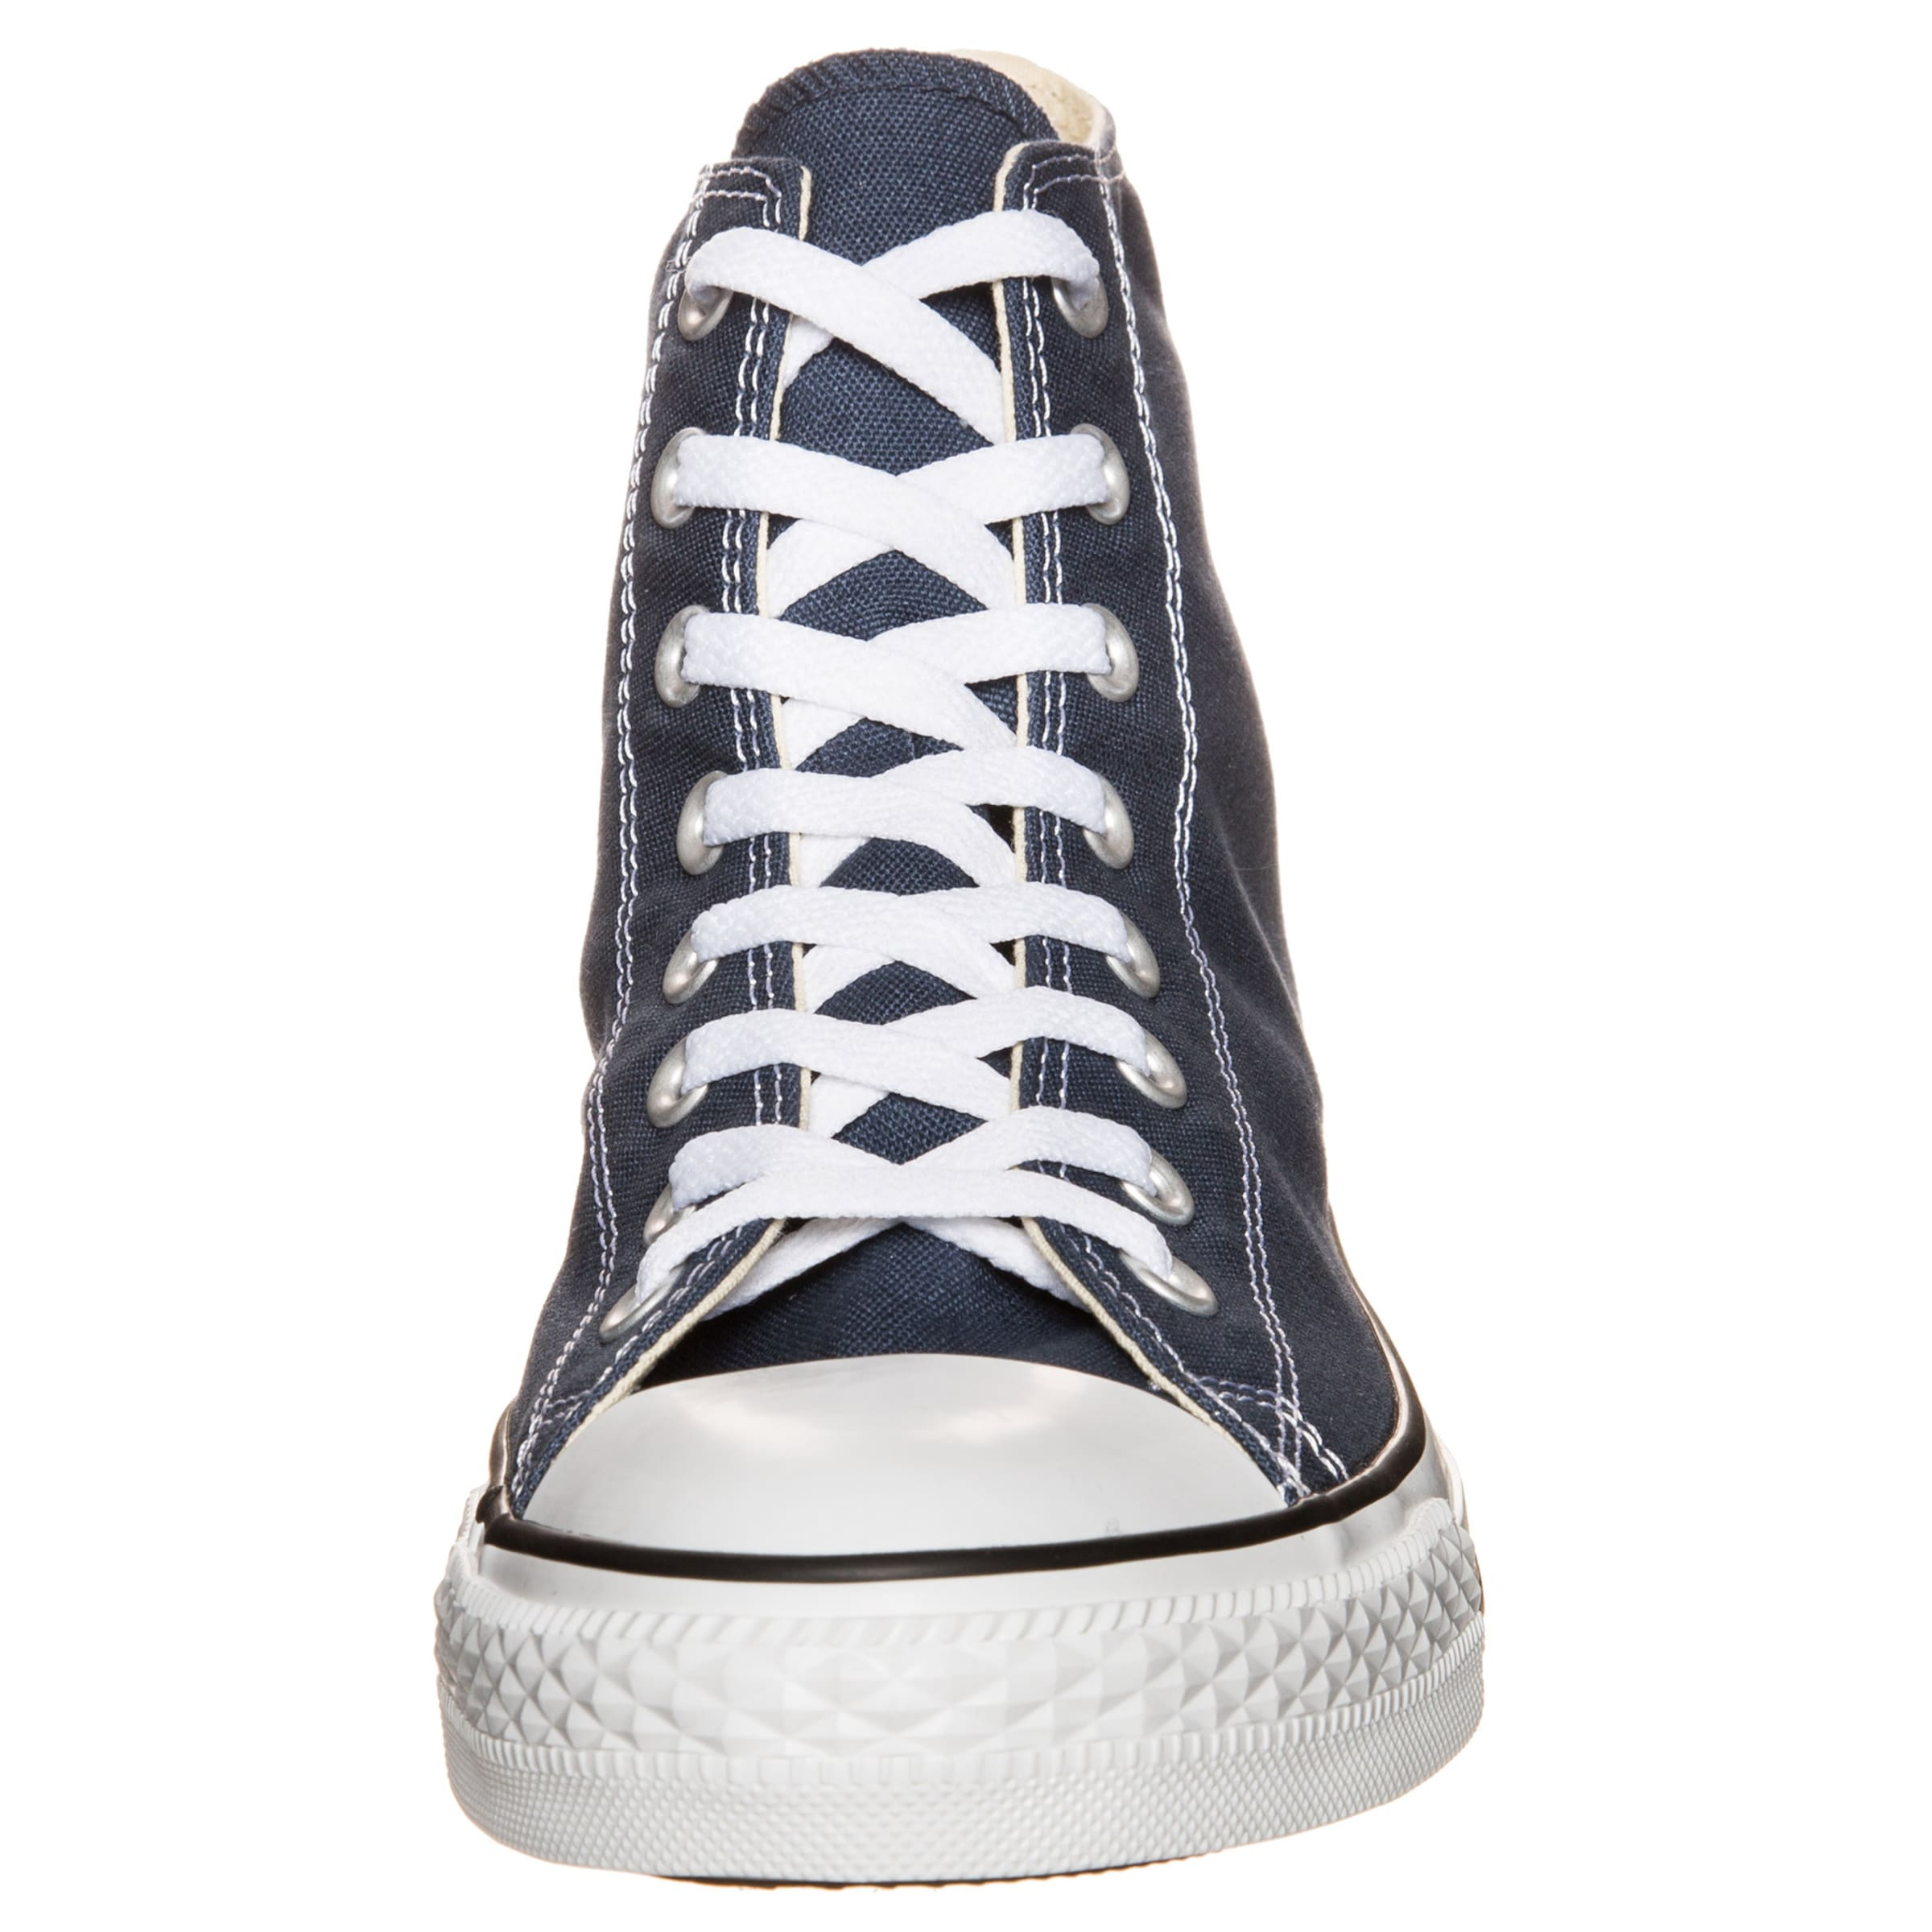 Converse Sneaker High MarineWeiß In Converse In MarineWeiß Converse High Sneaker SzVMGqUp